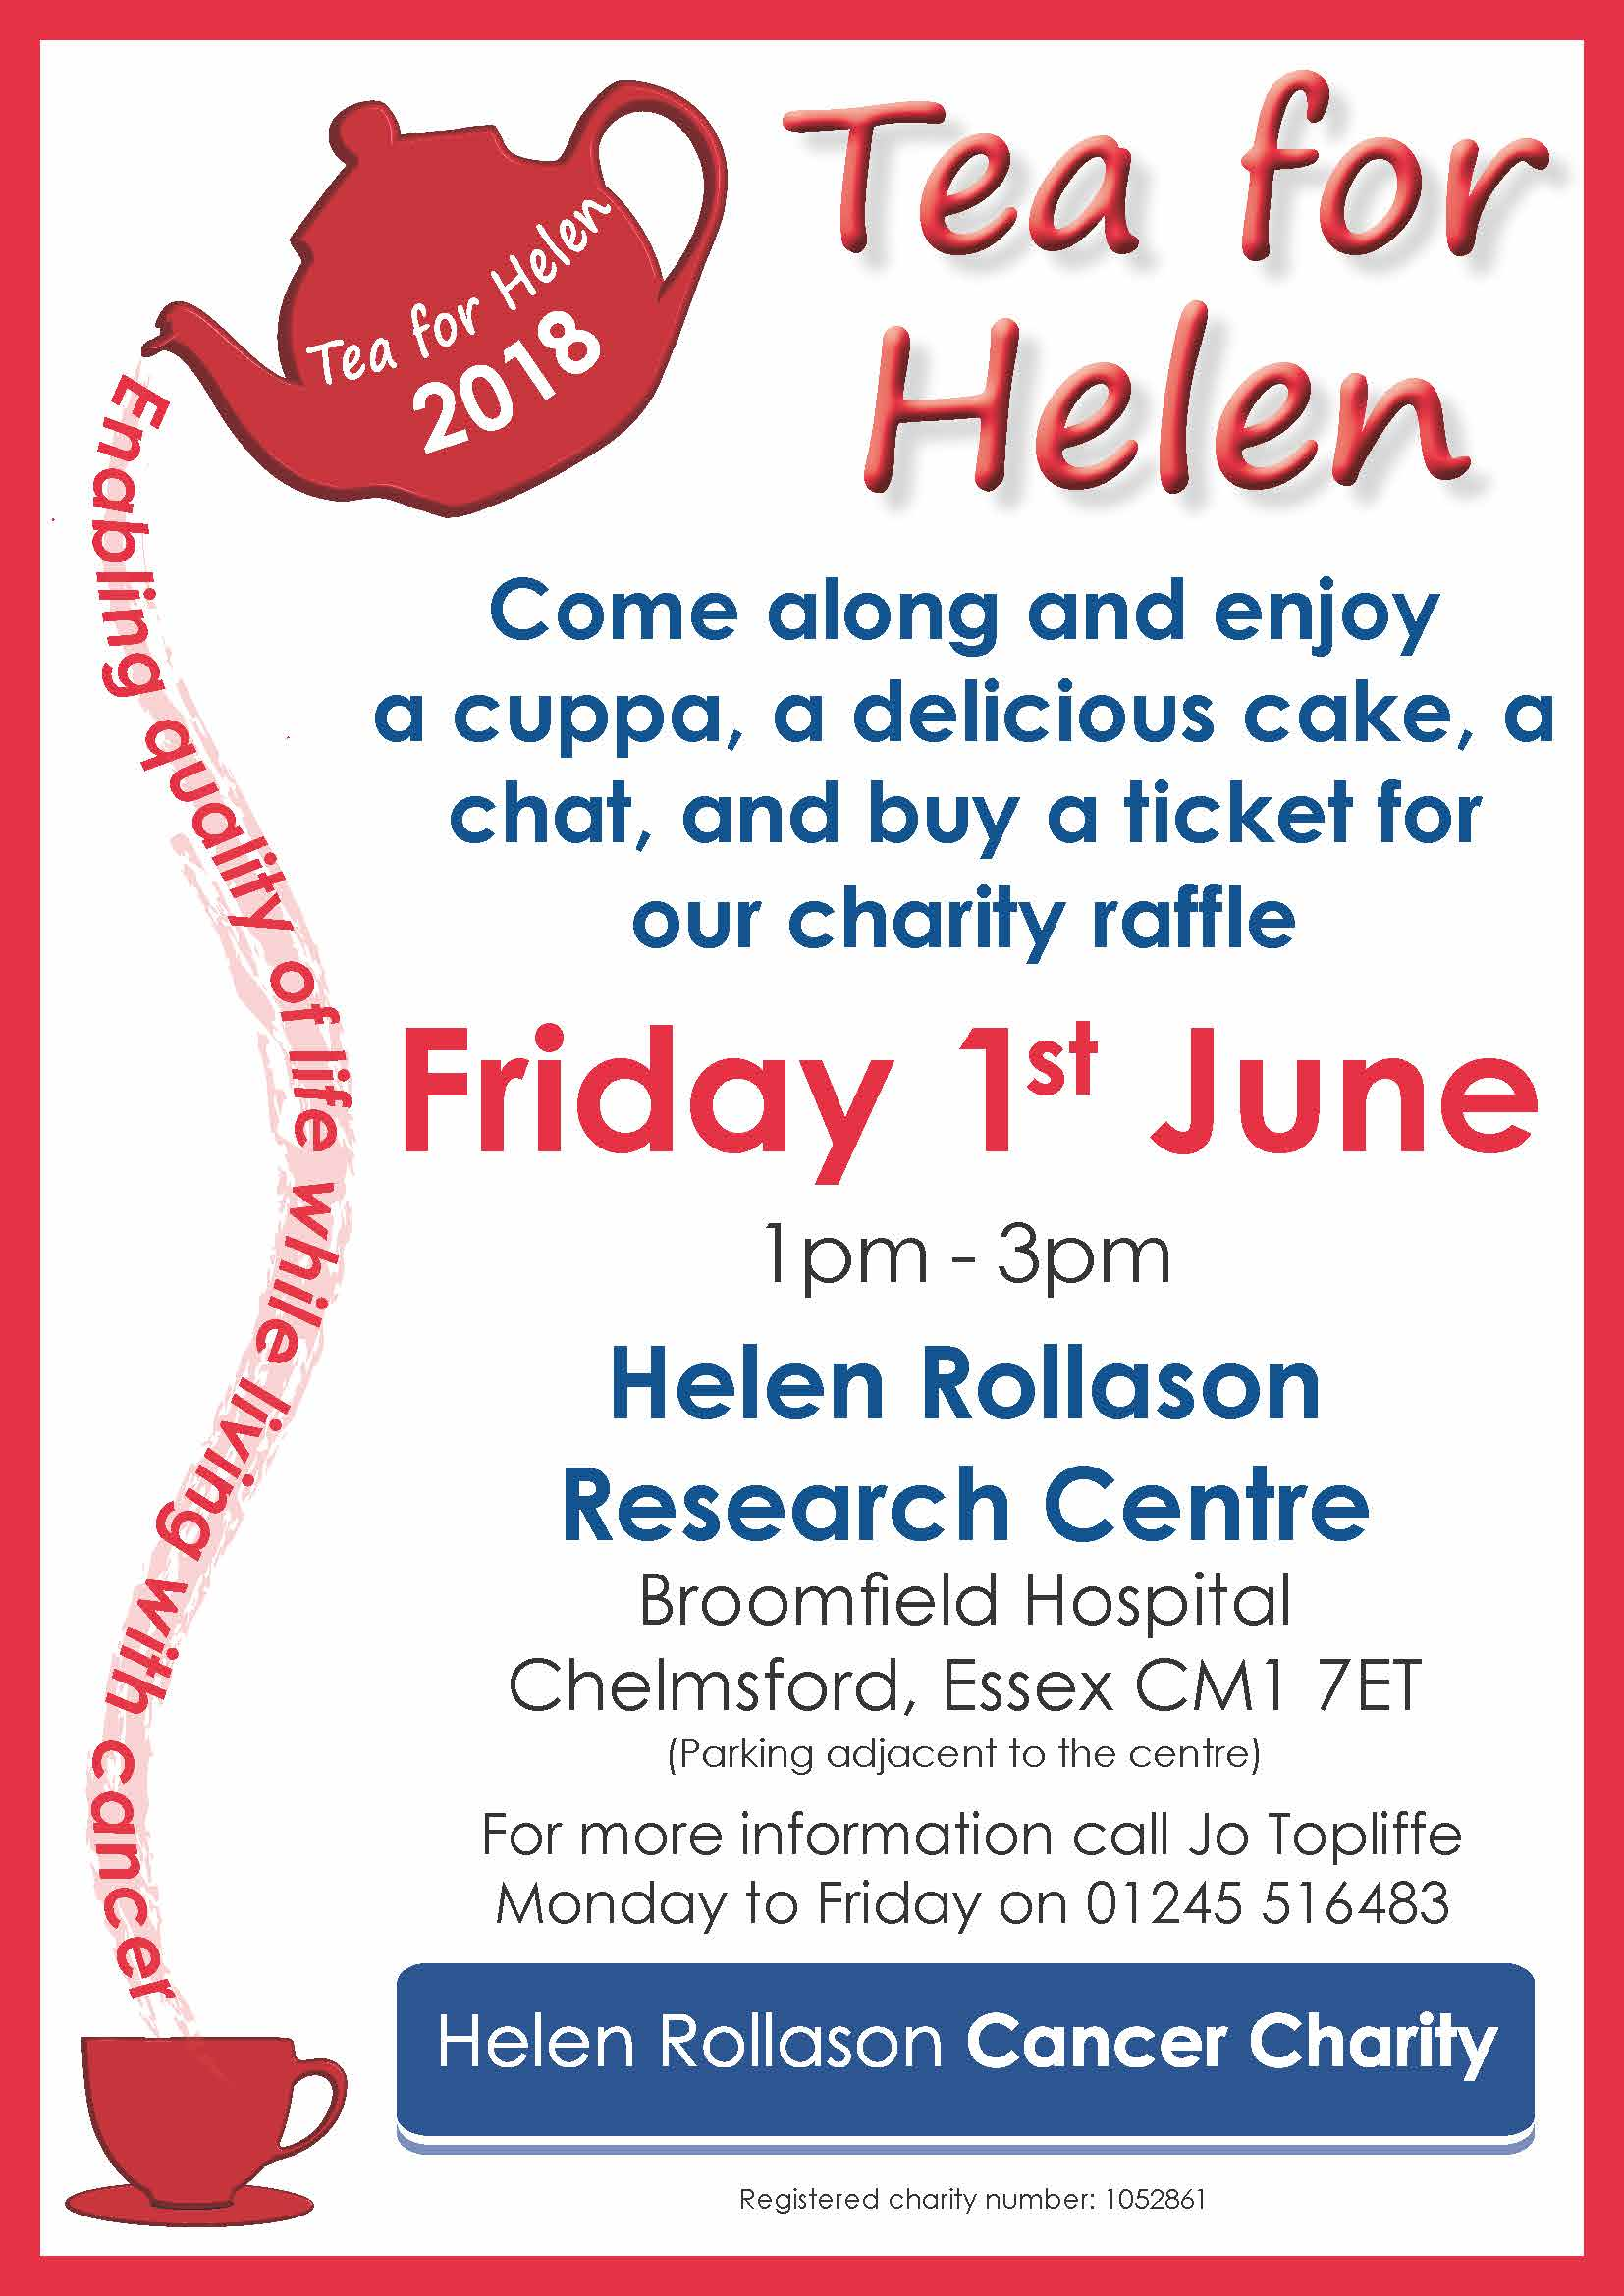 Tea for Helen - Broomfield Hospital 2018